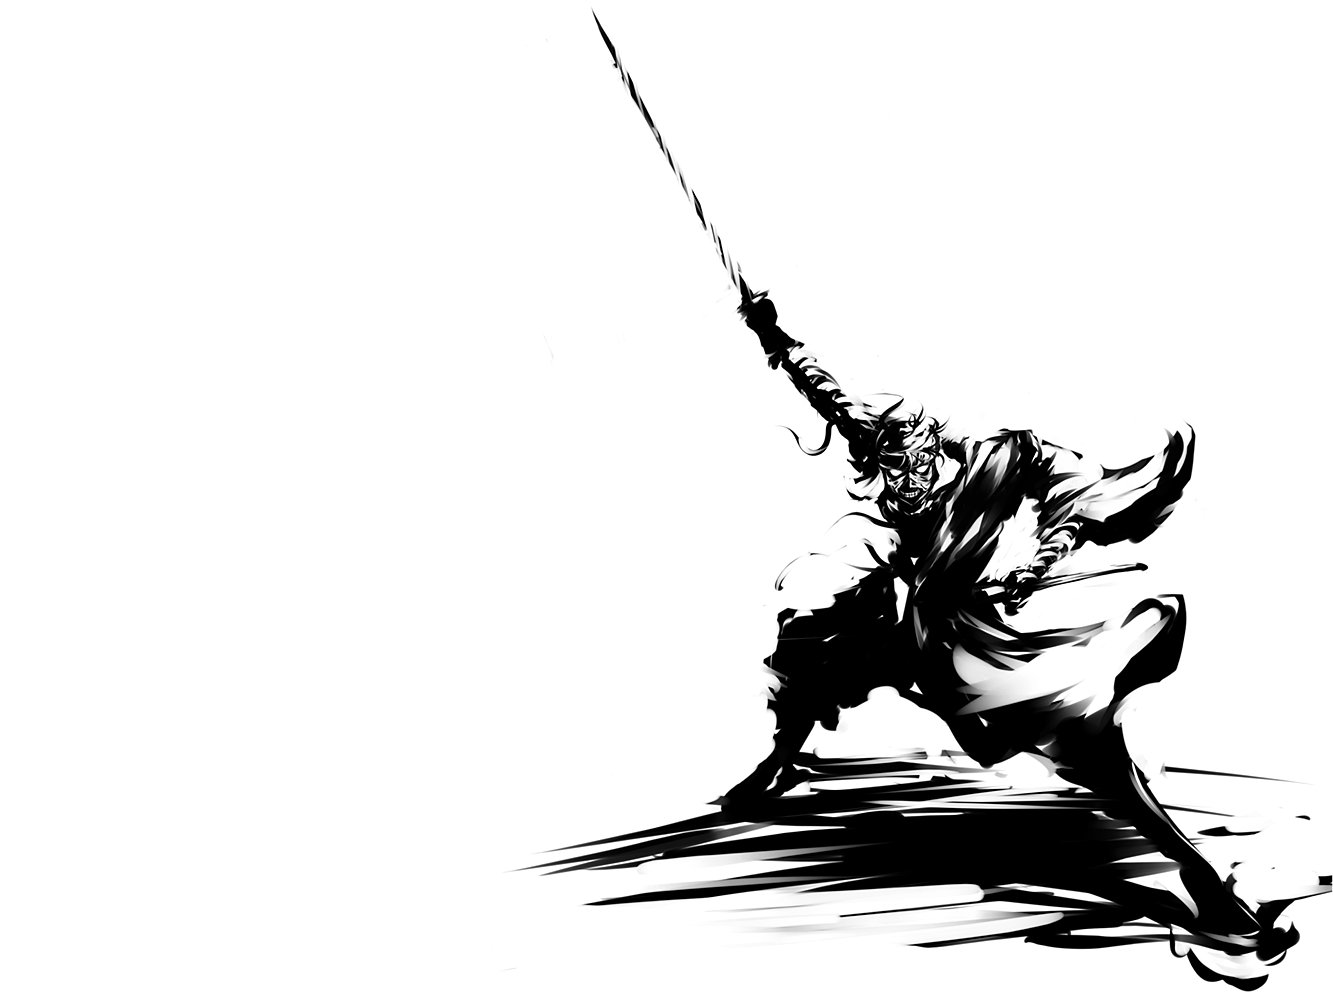 Zoro Wallpaper Black And White 1333x1000 Wallpaper Teahub Io